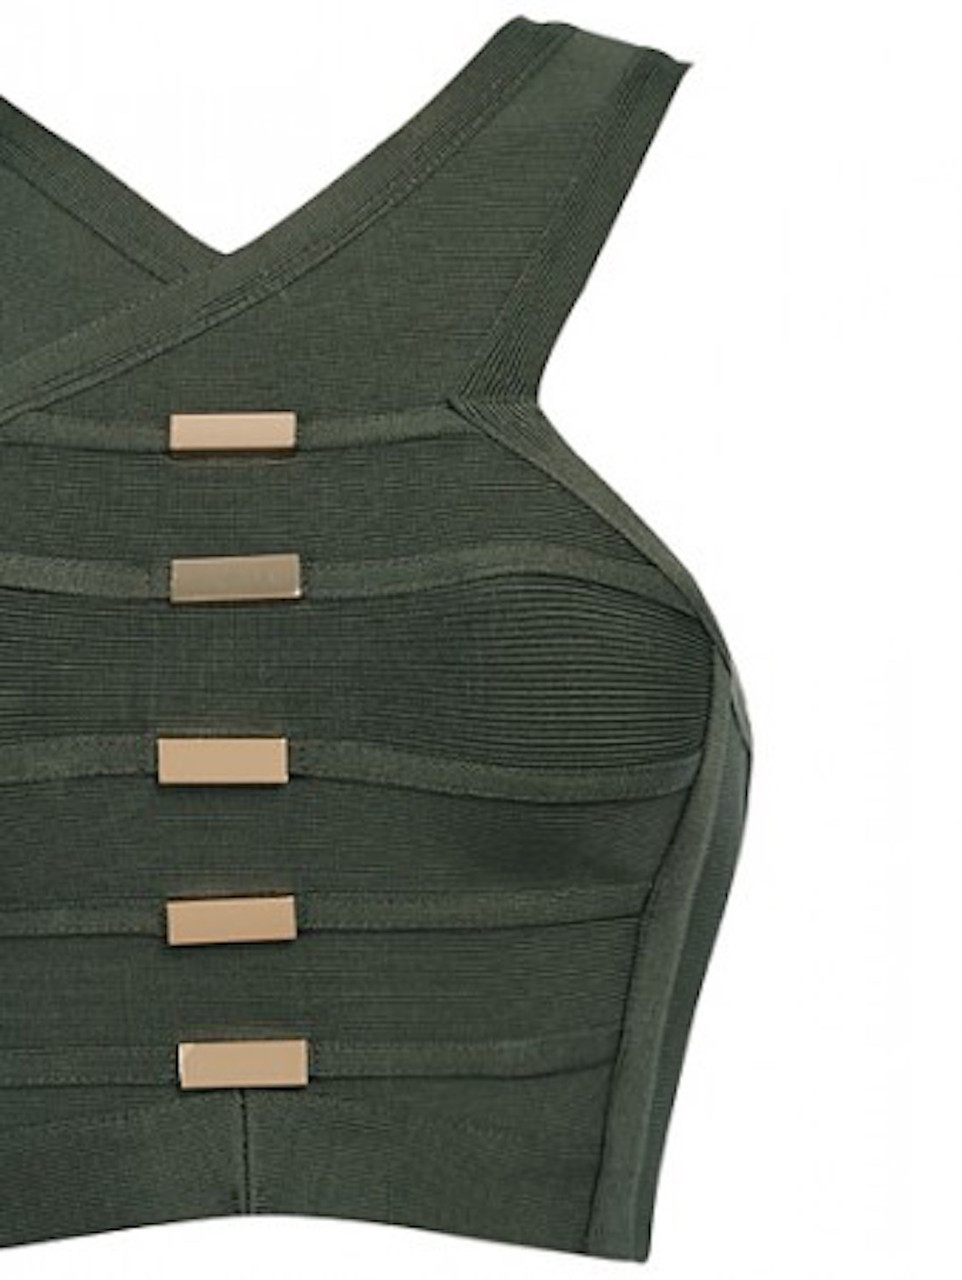 Olive Green Halter Crop Top & Celeb Inspired Two Piece Bandage set